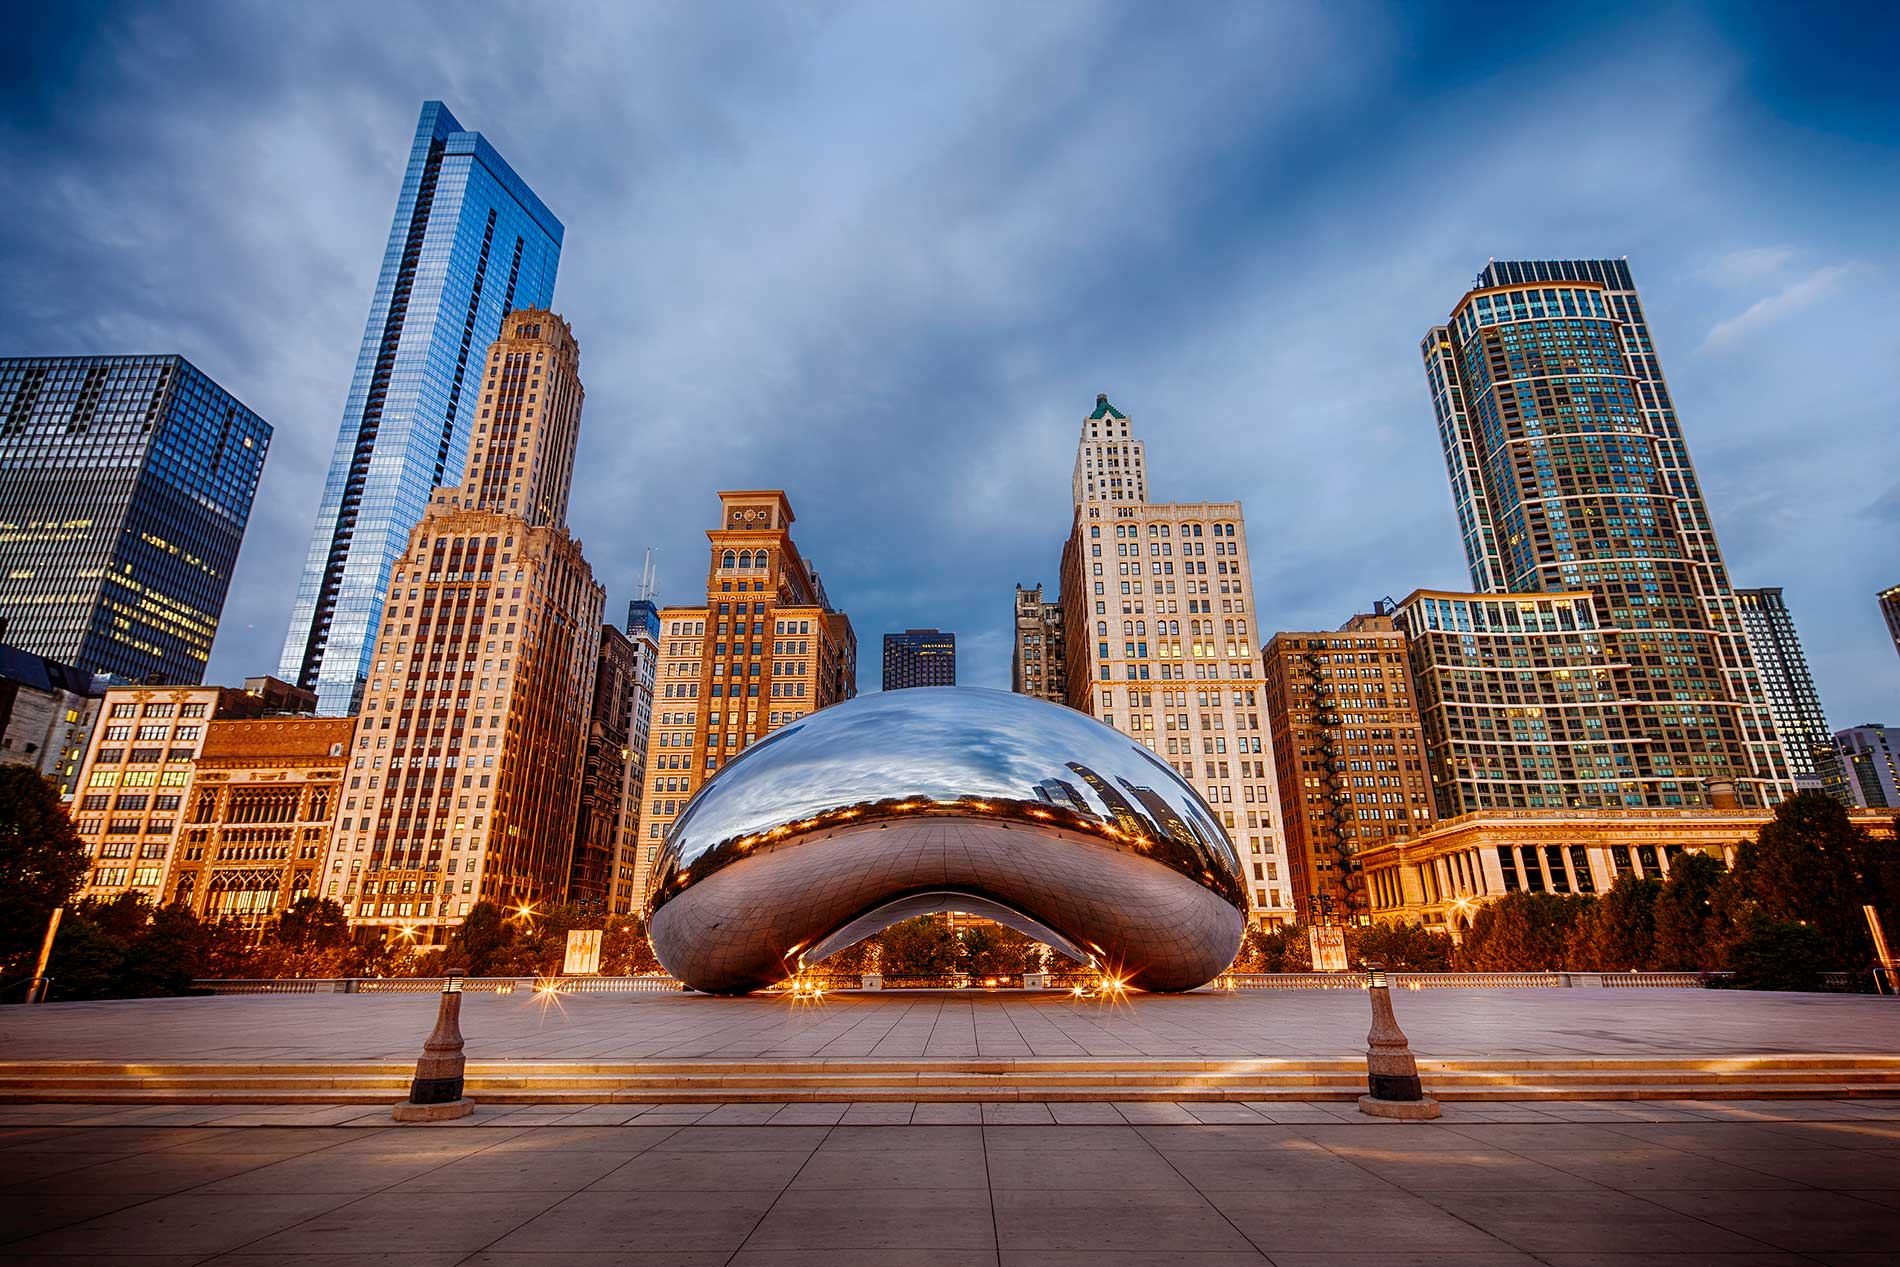 Cloud Gate at Millenium Park in Chicago at sunrise was shot using a Neutral Density filter to remove pedestrians in the frame